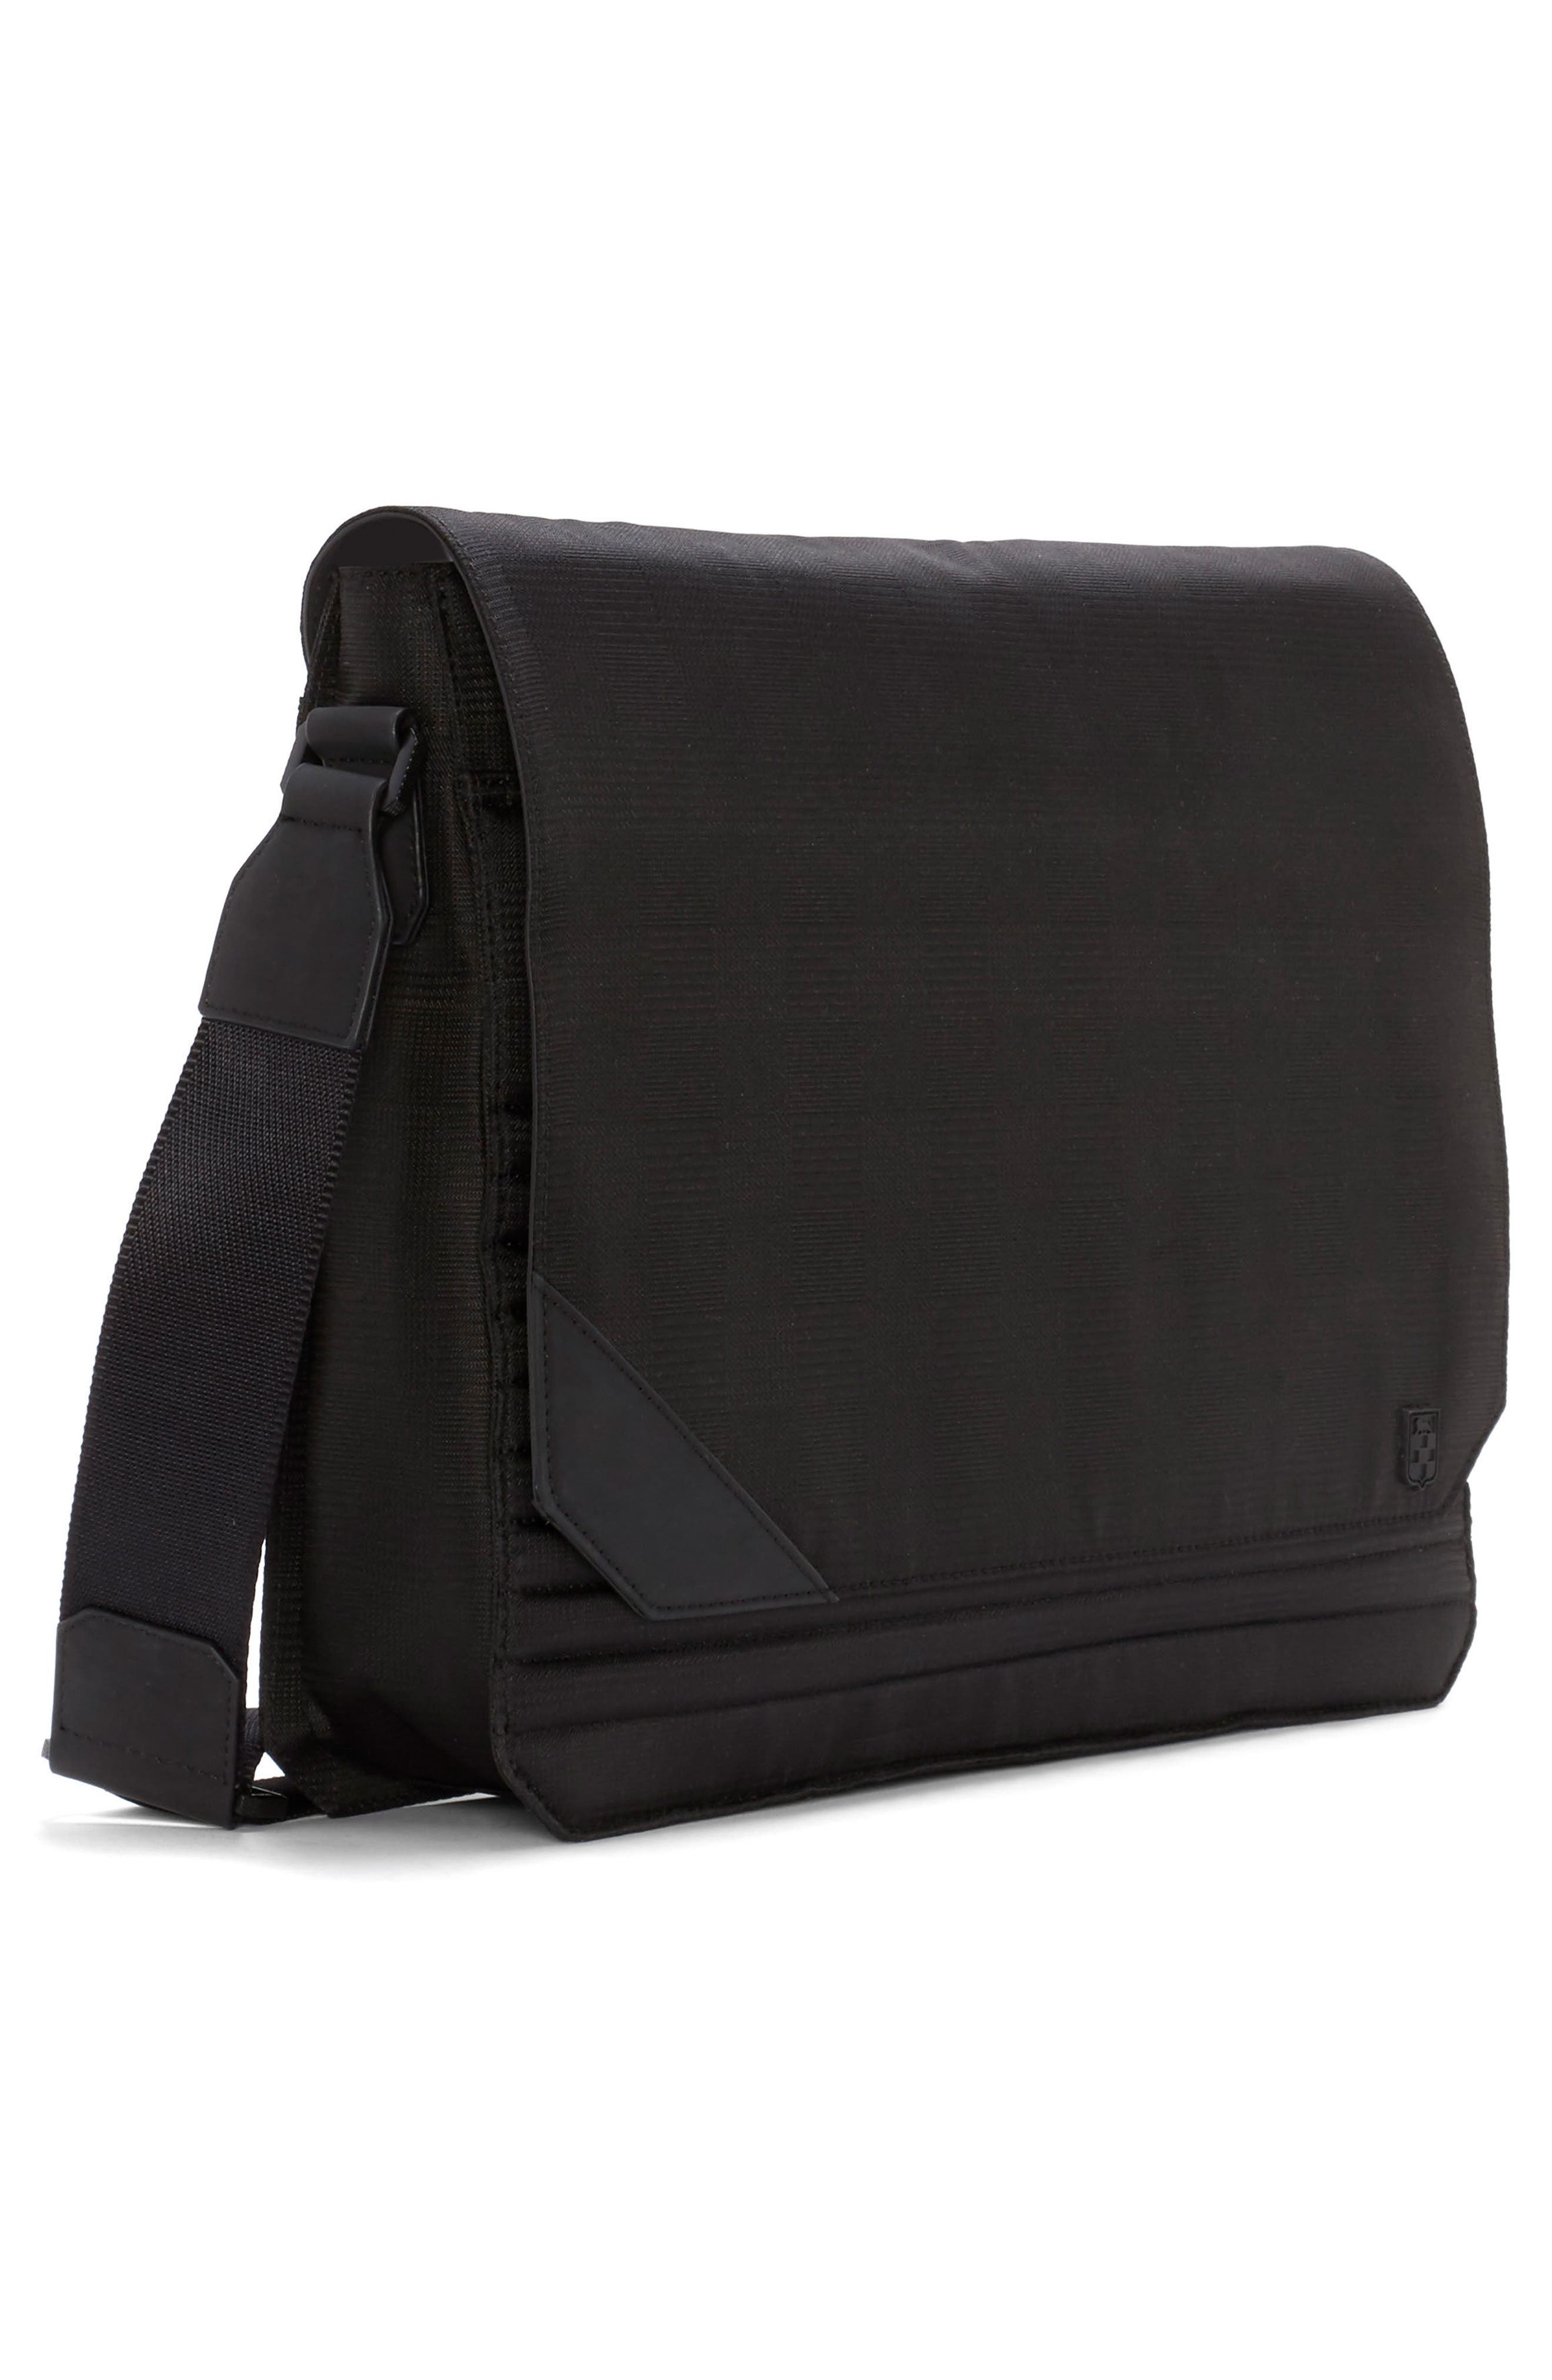 Race Messenger Bag,                             Alternate thumbnail 3, color,